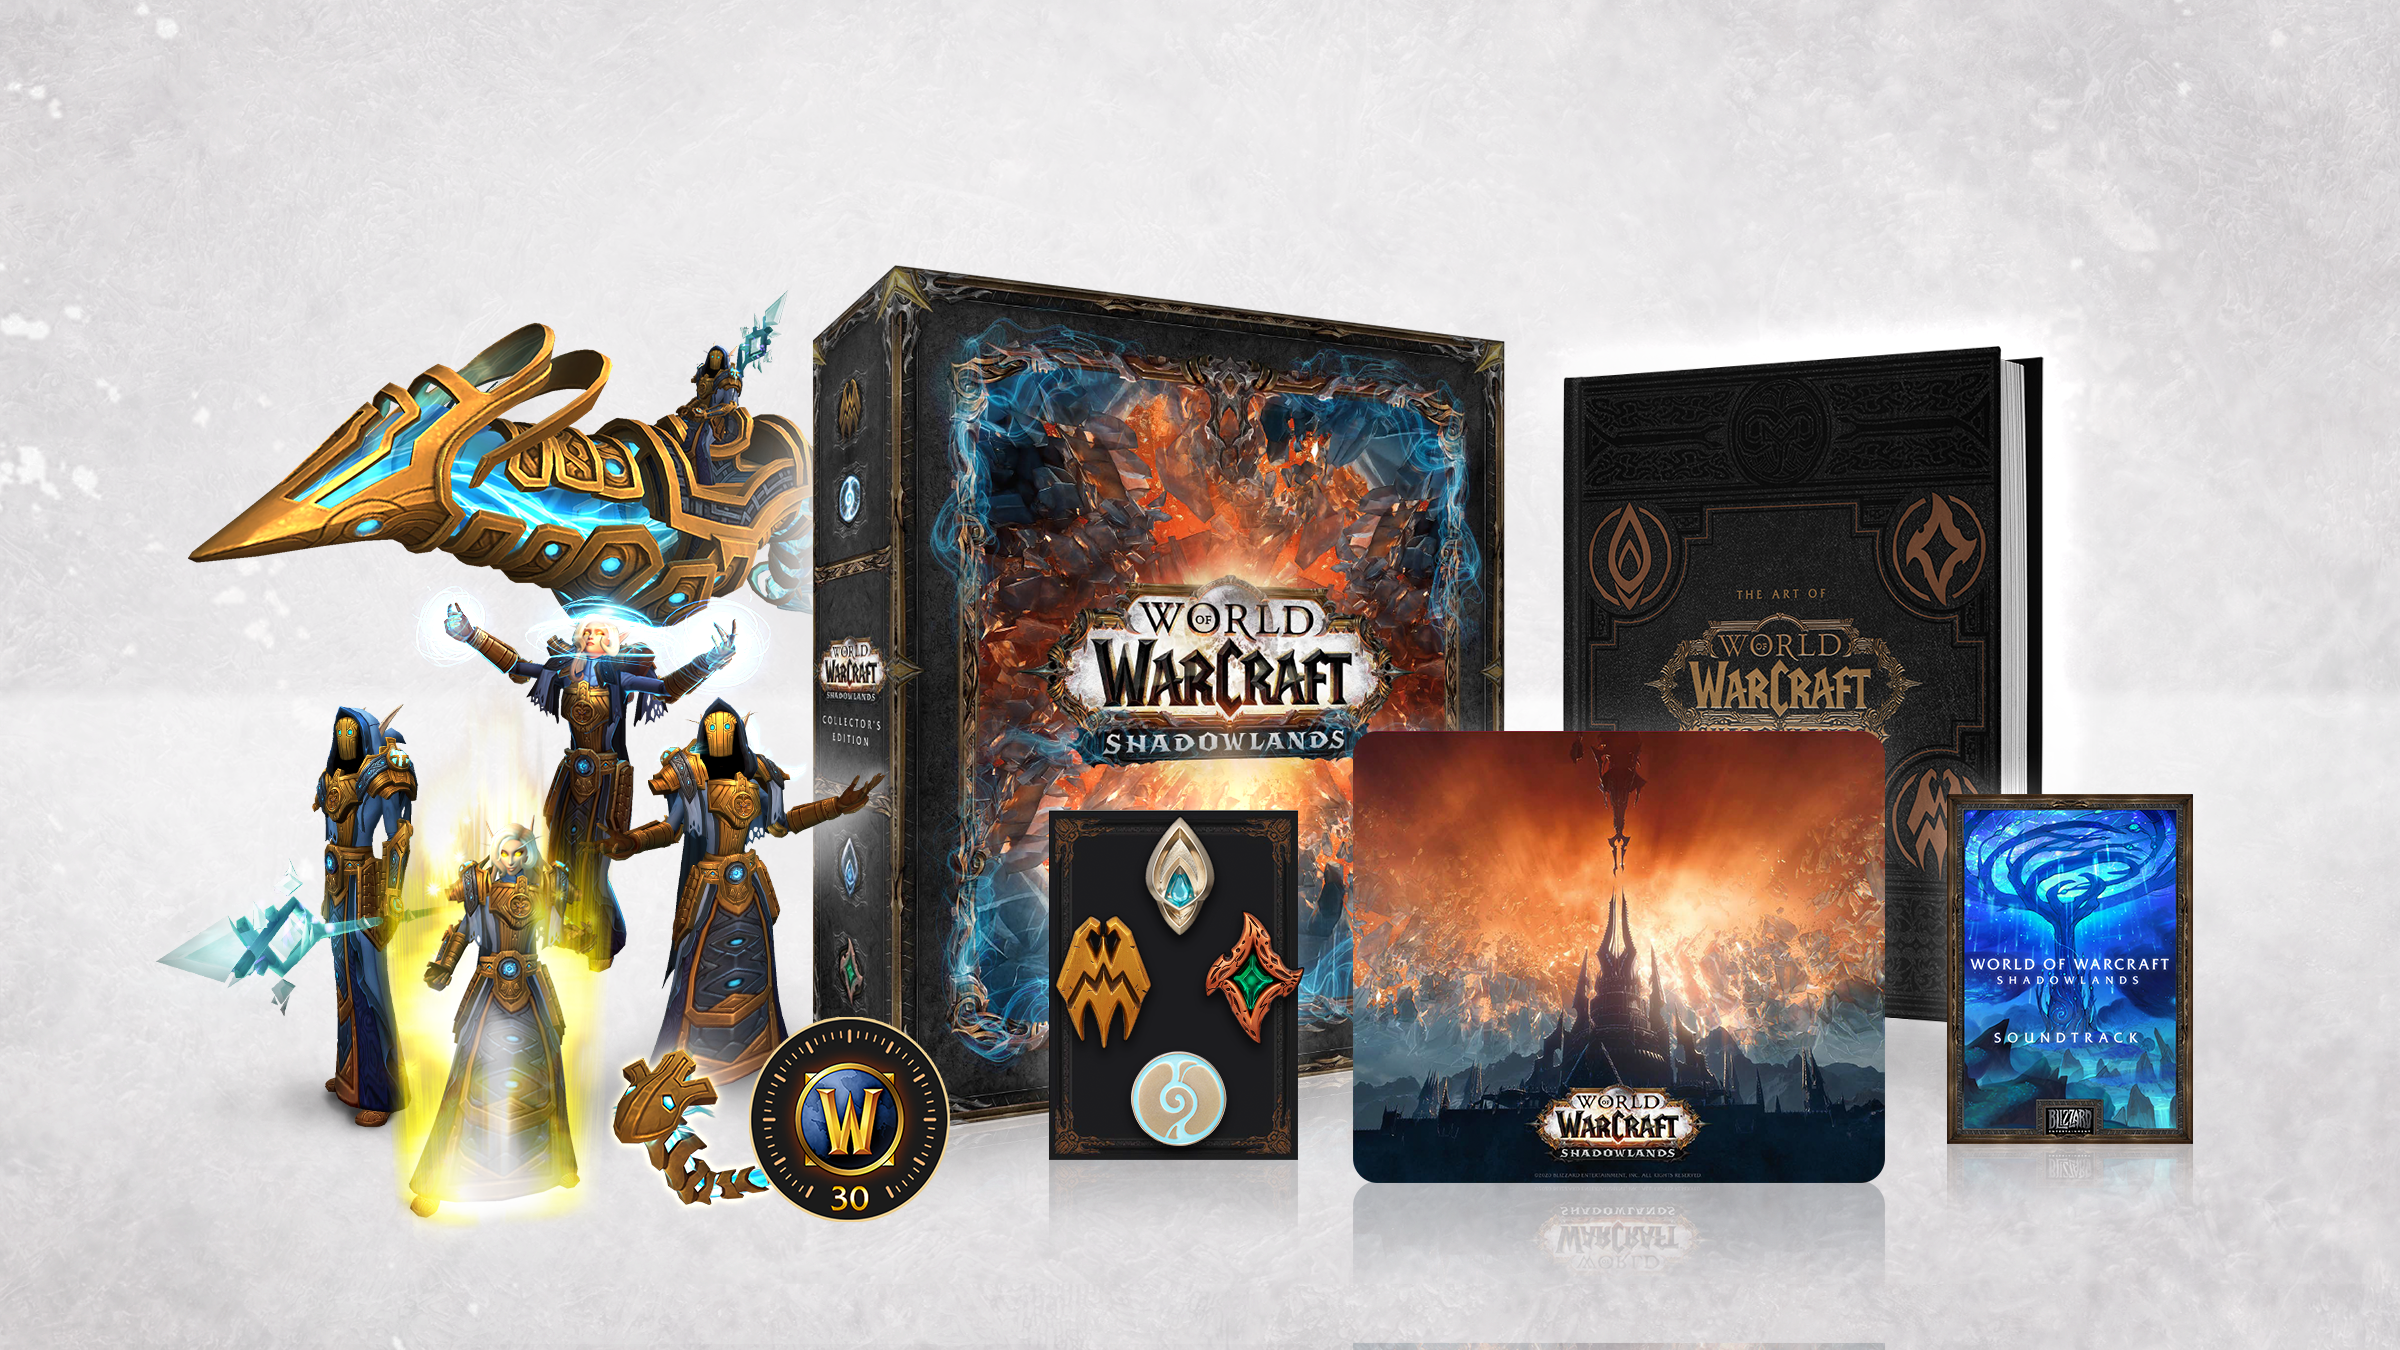 [Updated Aug. 27] Get the Shadowlands Collector's Edition